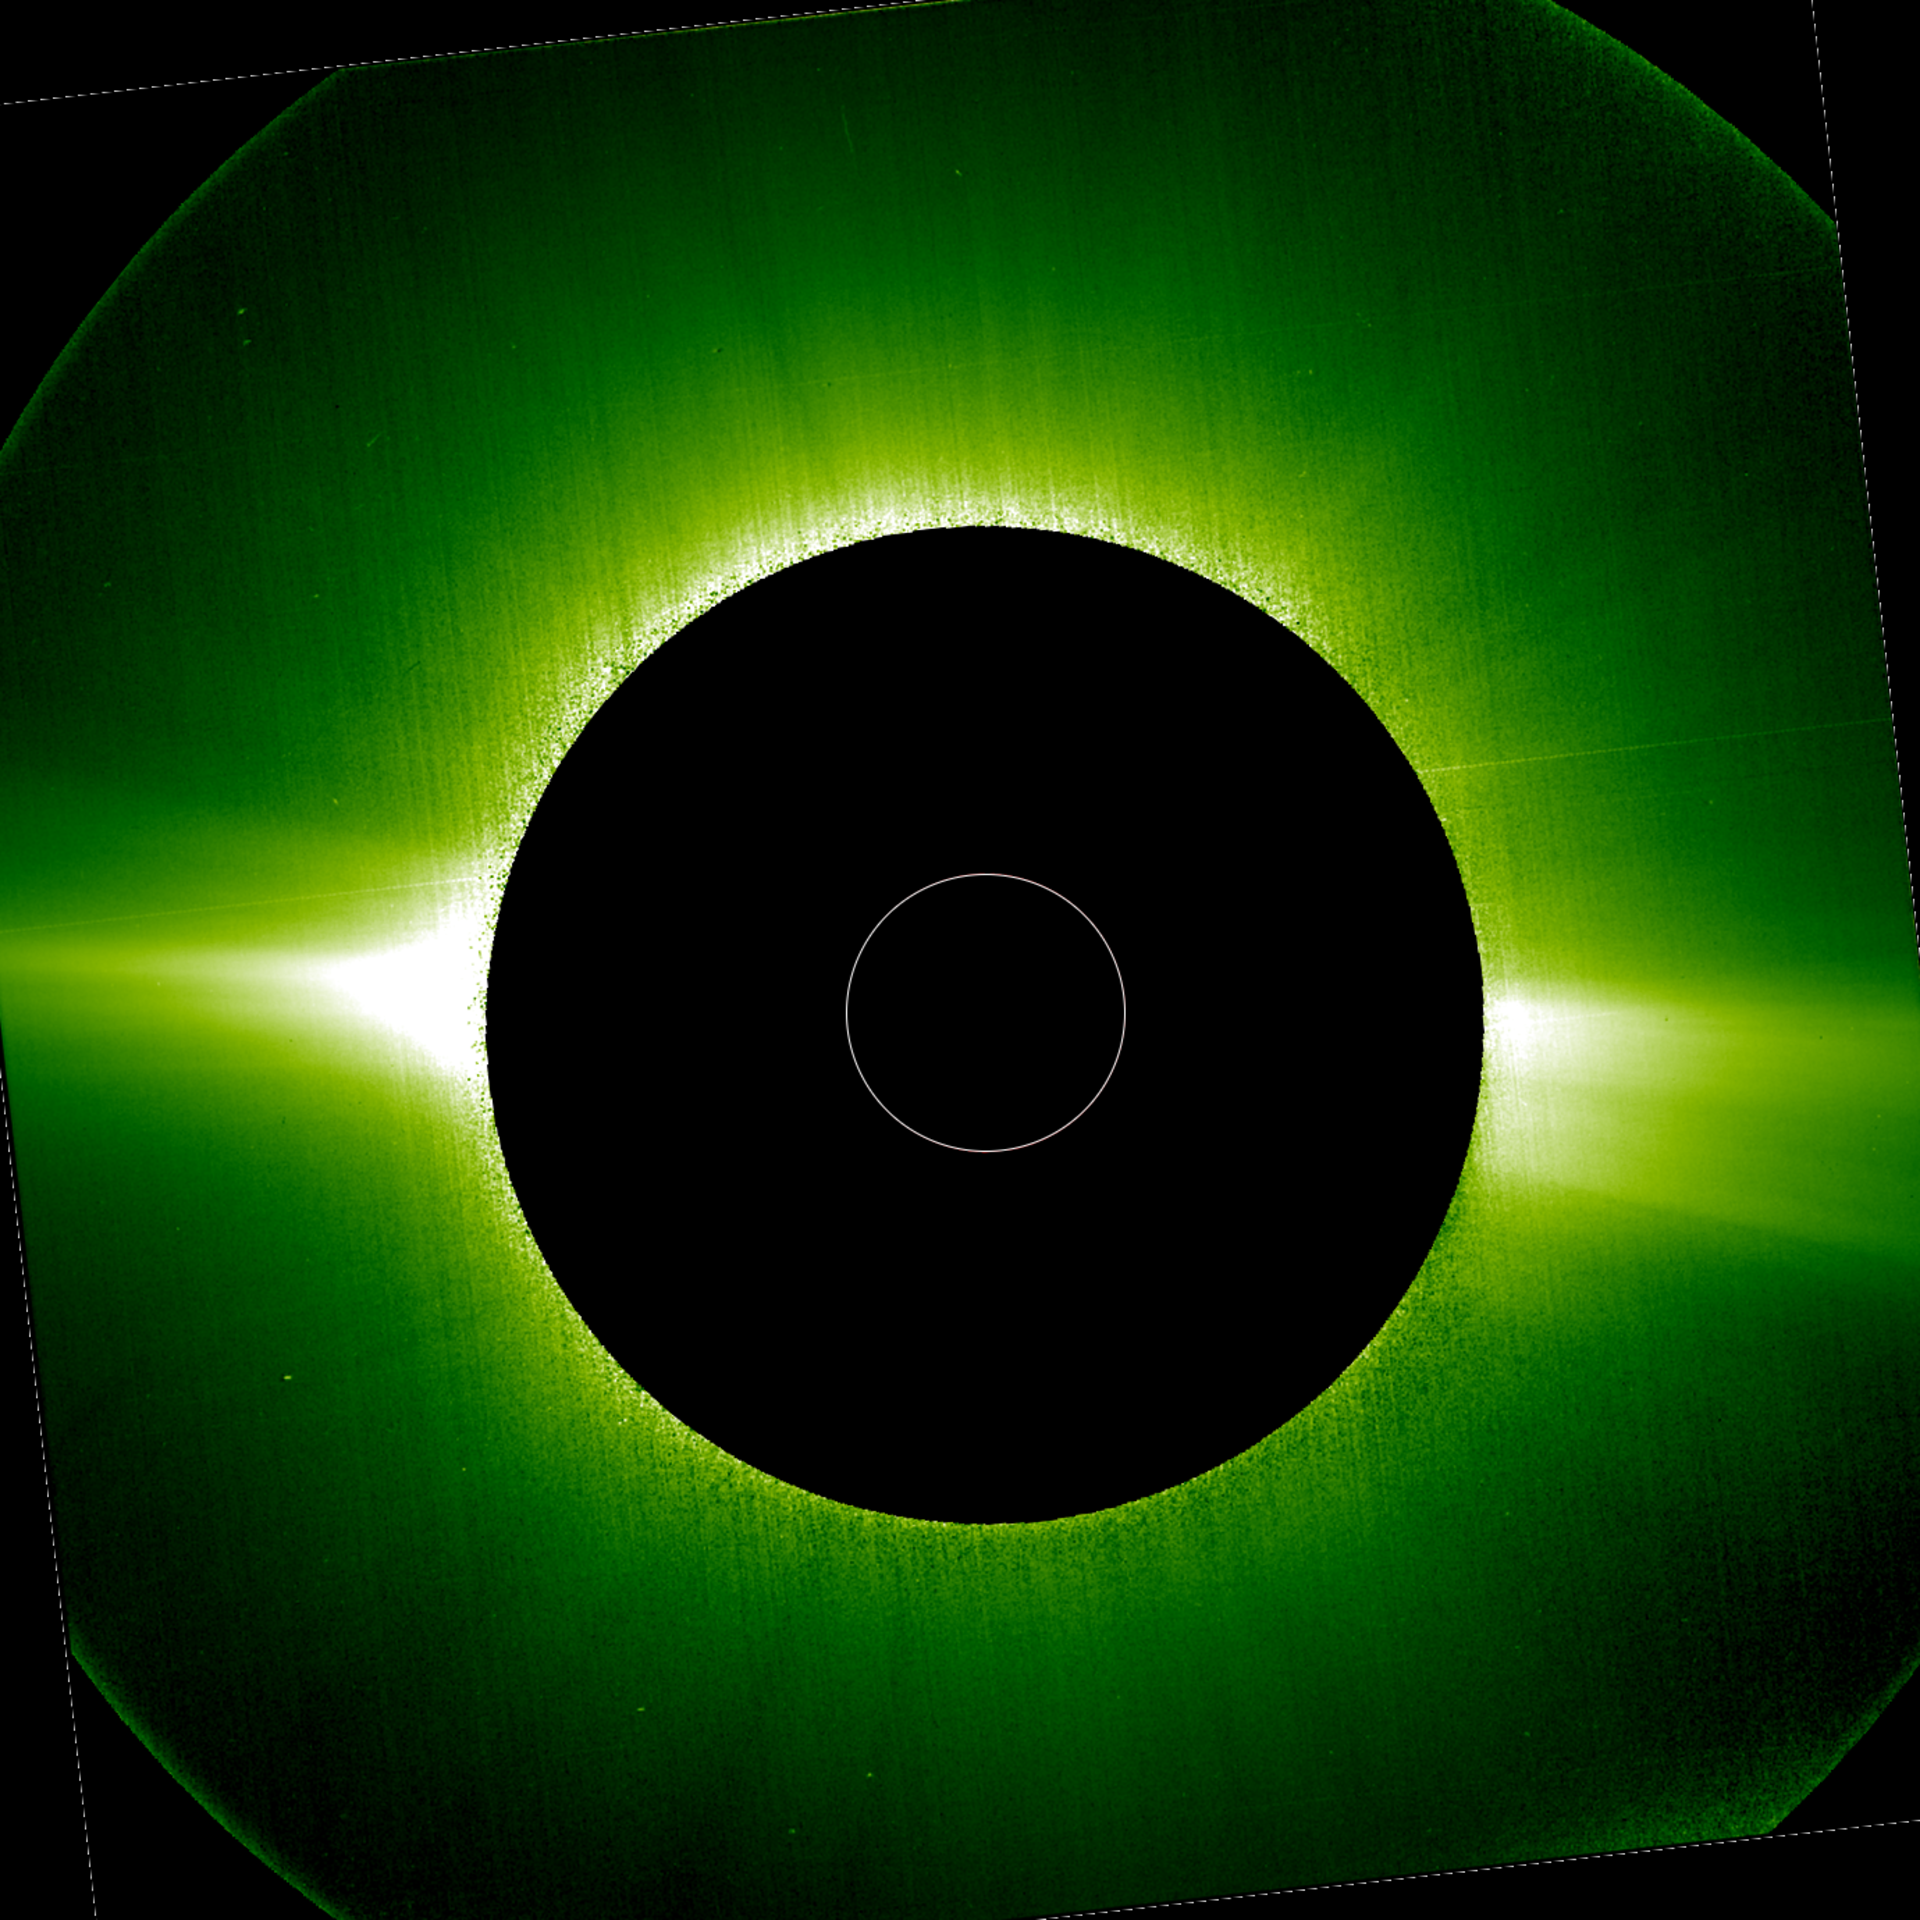 An image of the Sun's corona obtained with the Metis instrument on ESA's Solar Orbiter. This was obtained on 21 June 2020, shortly after the spacecraft's first perihelion, and was taken in visible light (580-640 nm). It shows the two bright equatorial streamers and fainter polar regions that are characteristic of the solar corona during times of minimal magnetic activity.  (Solar Orbiter/PHI Team/ESA & NASA)